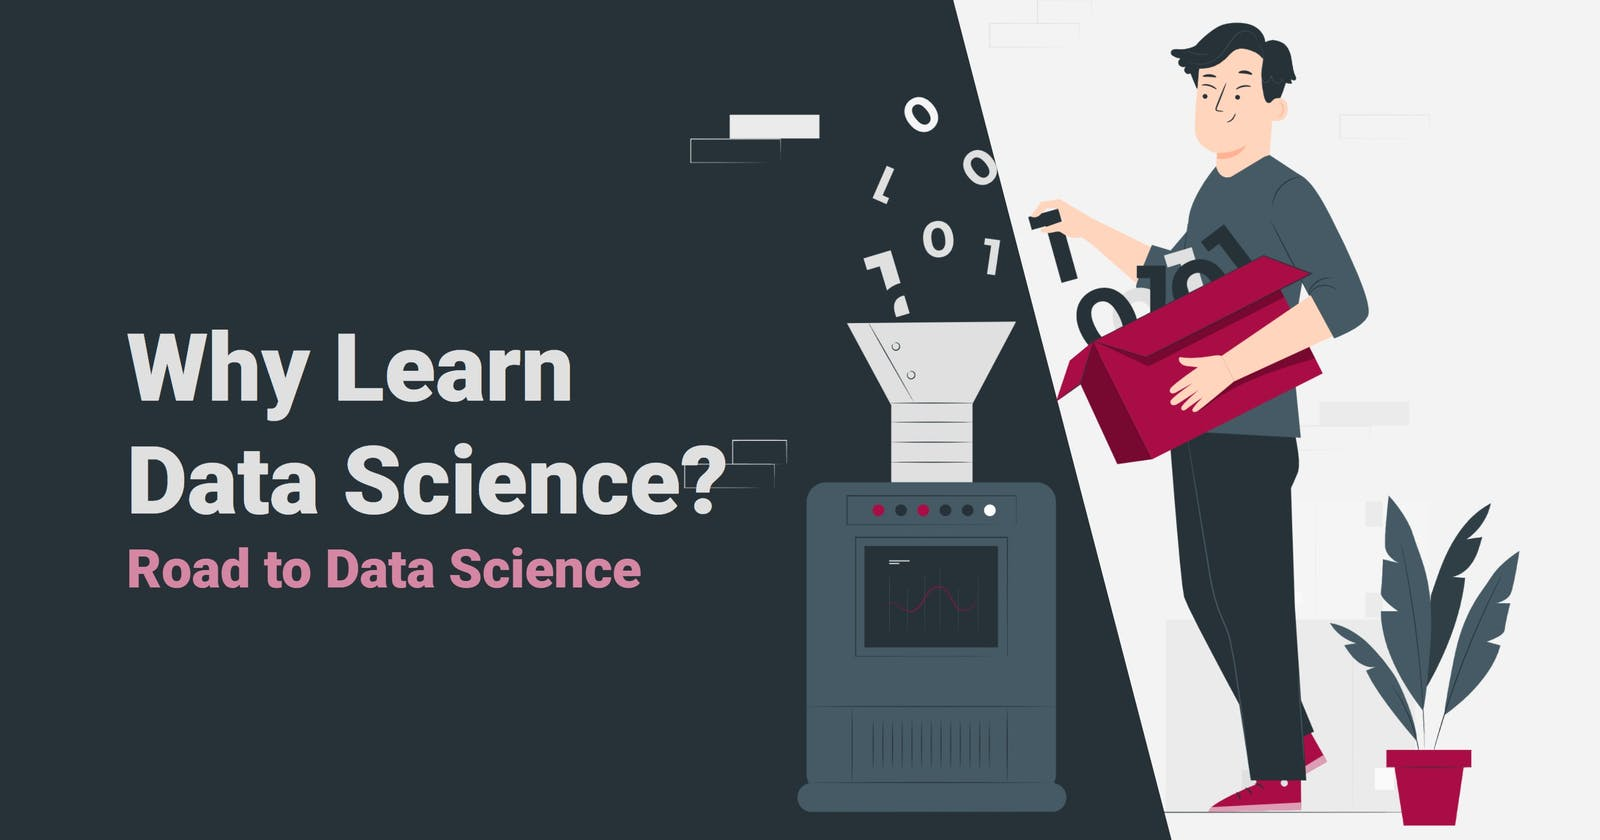 Why Learn Data Science?